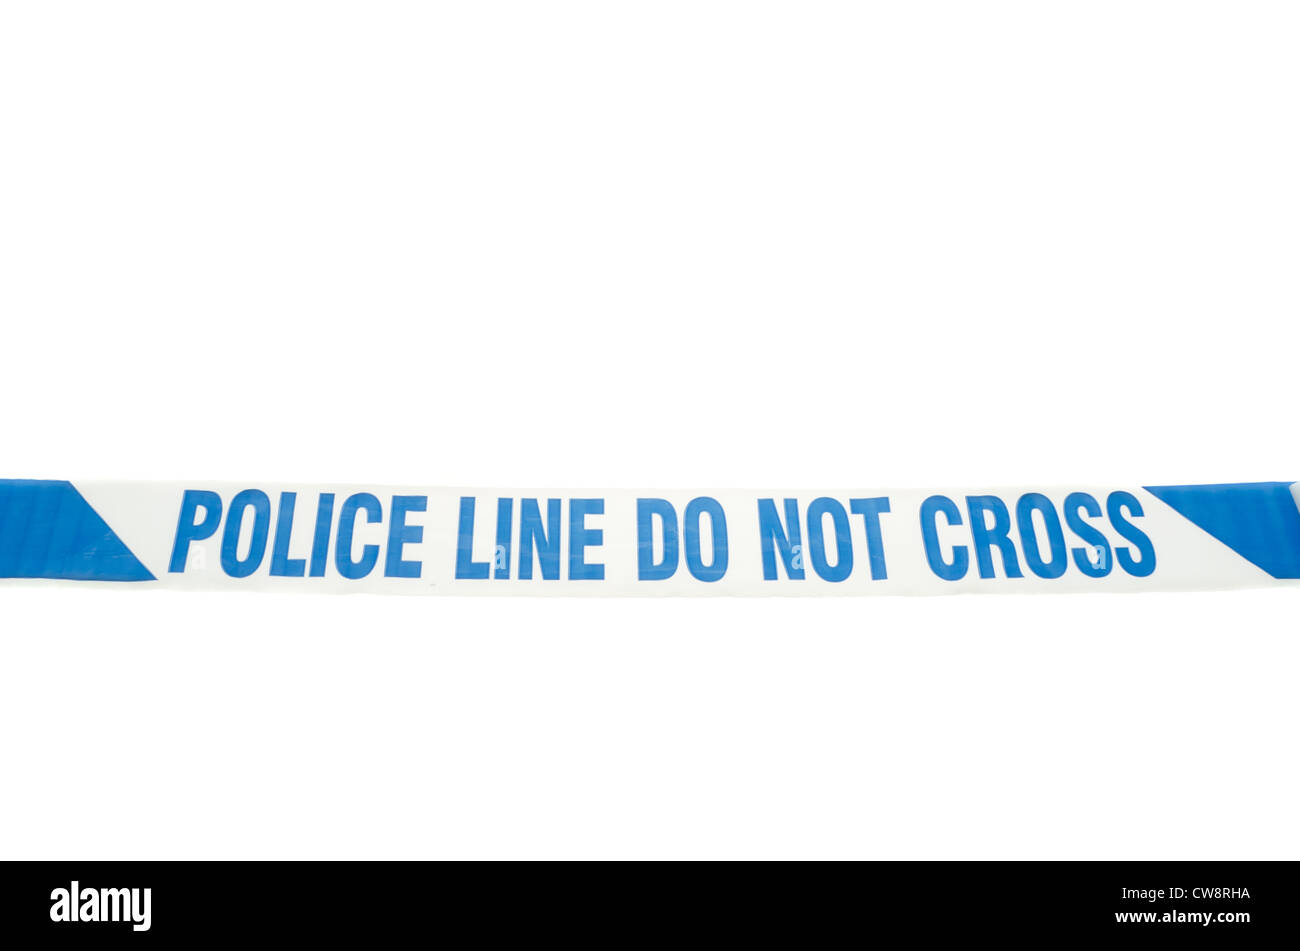 'Police line do not cross' tape stretched over a white background. - Stock Image